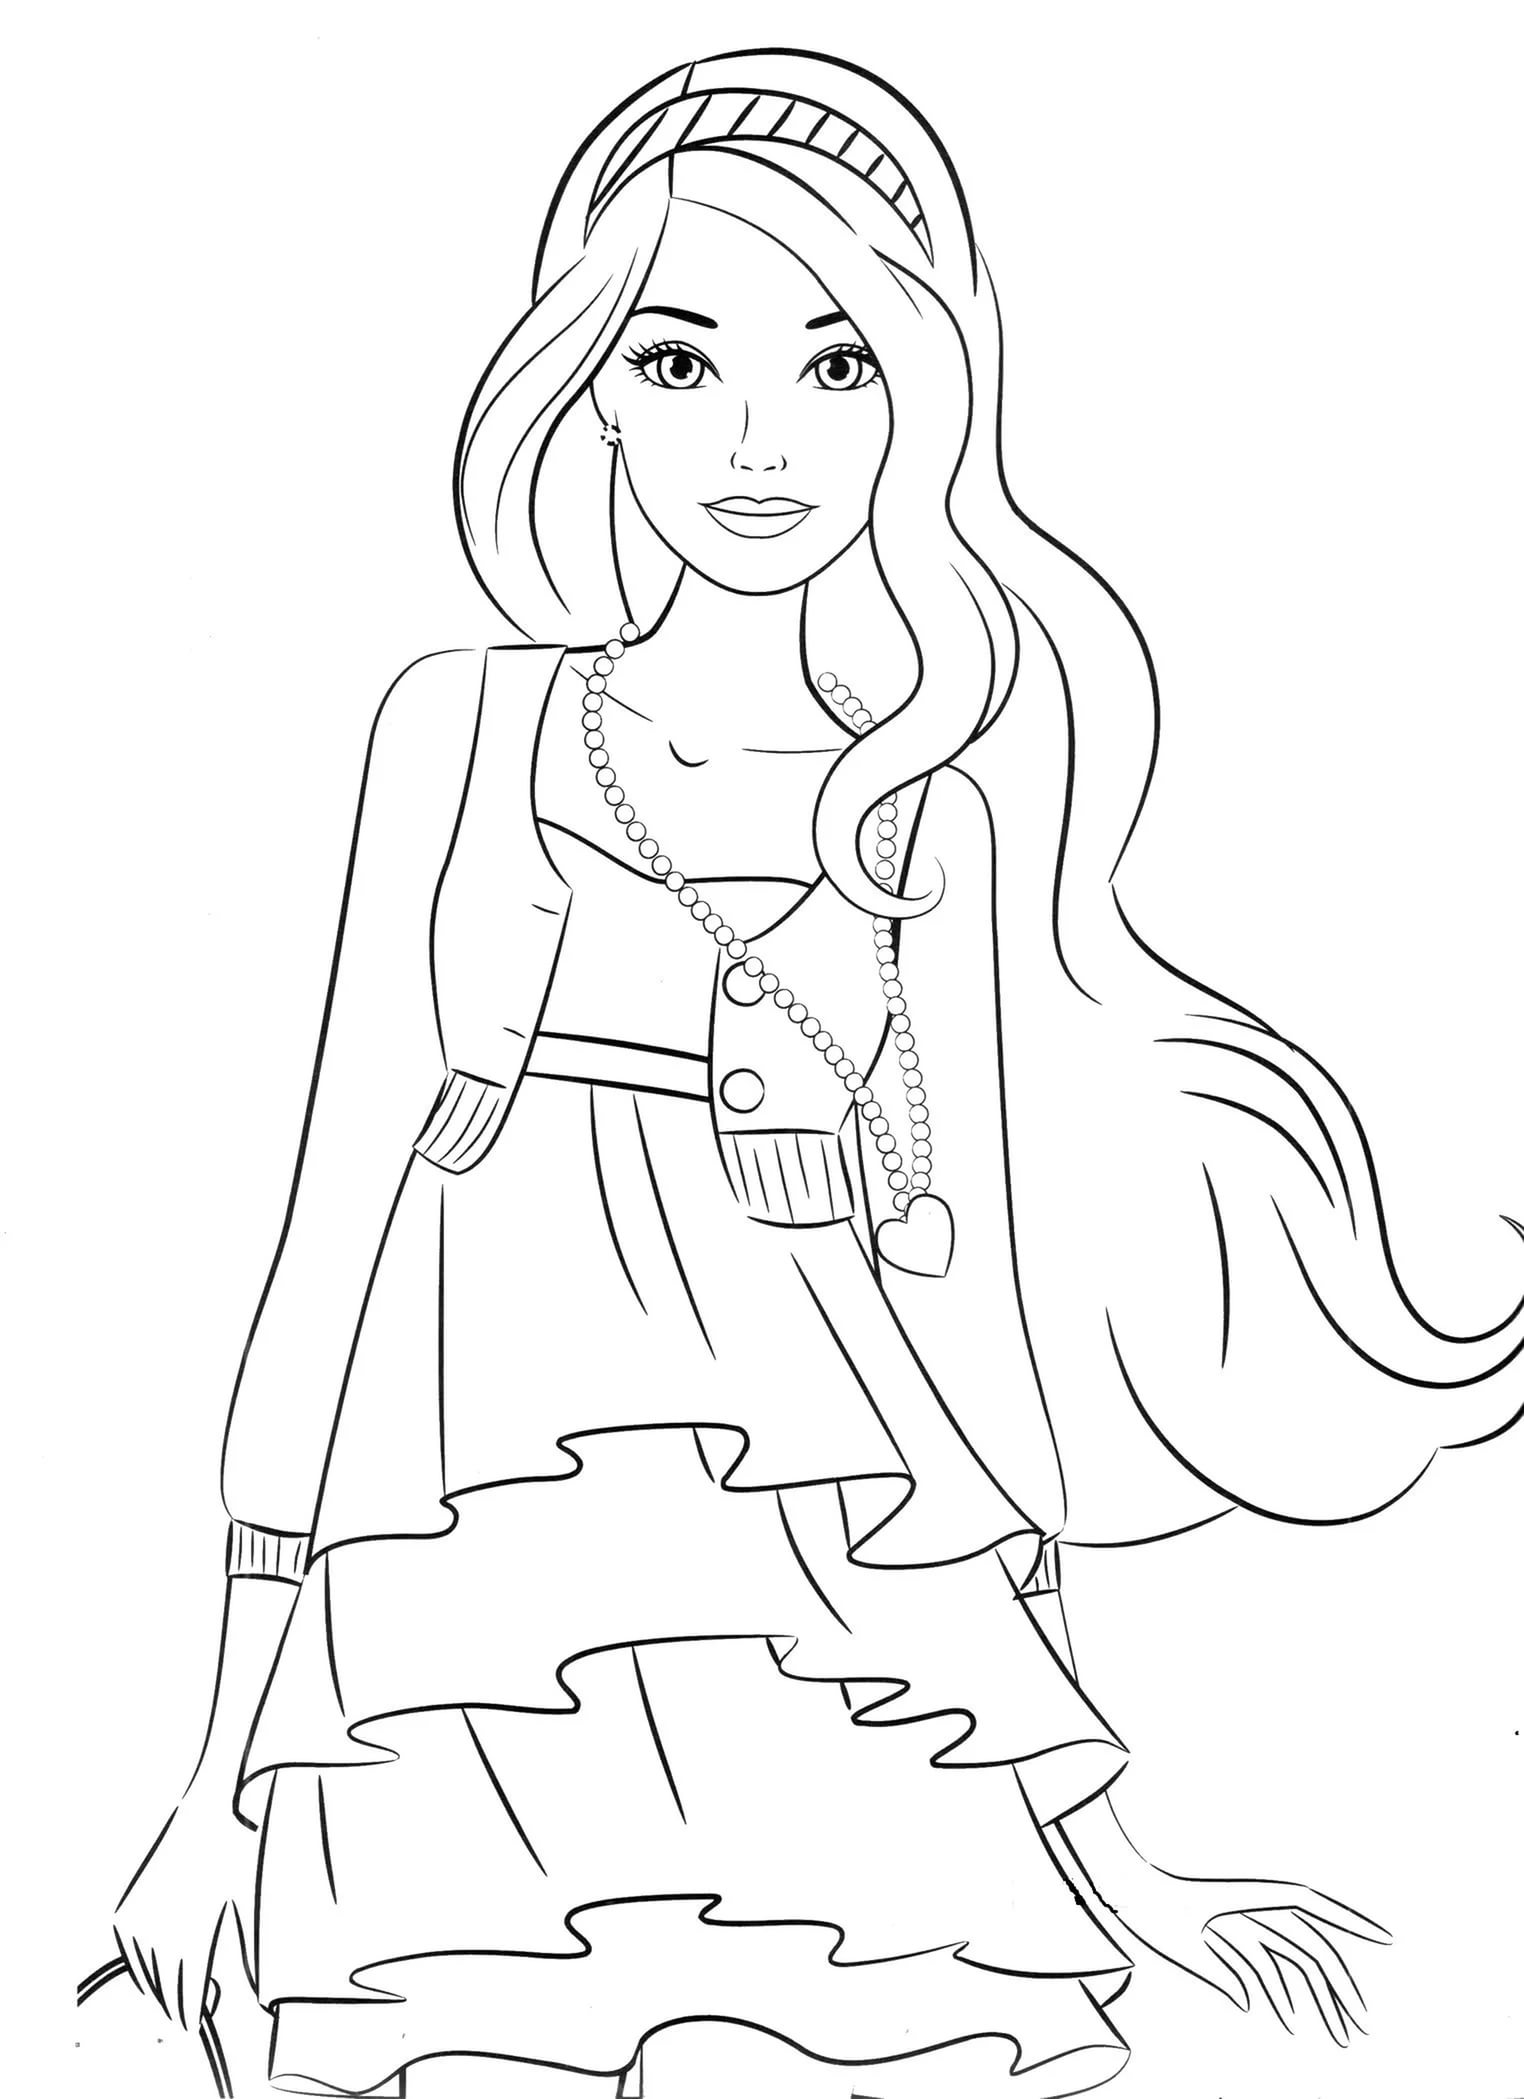 Coloring Pages For 4 Year Olds At Getcolorings